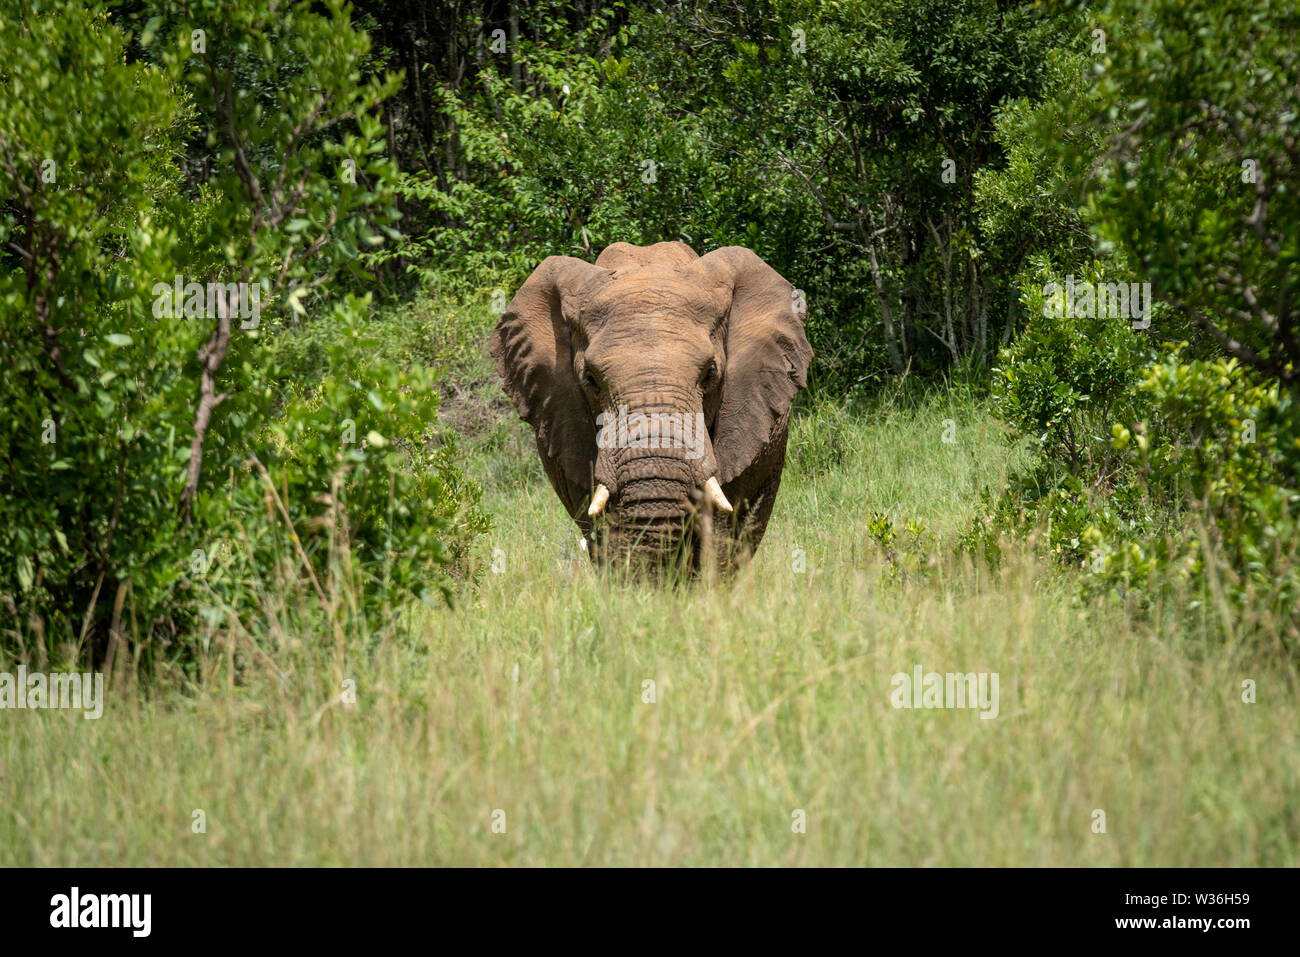 African elephant stands between trees facing camera - Stock Image